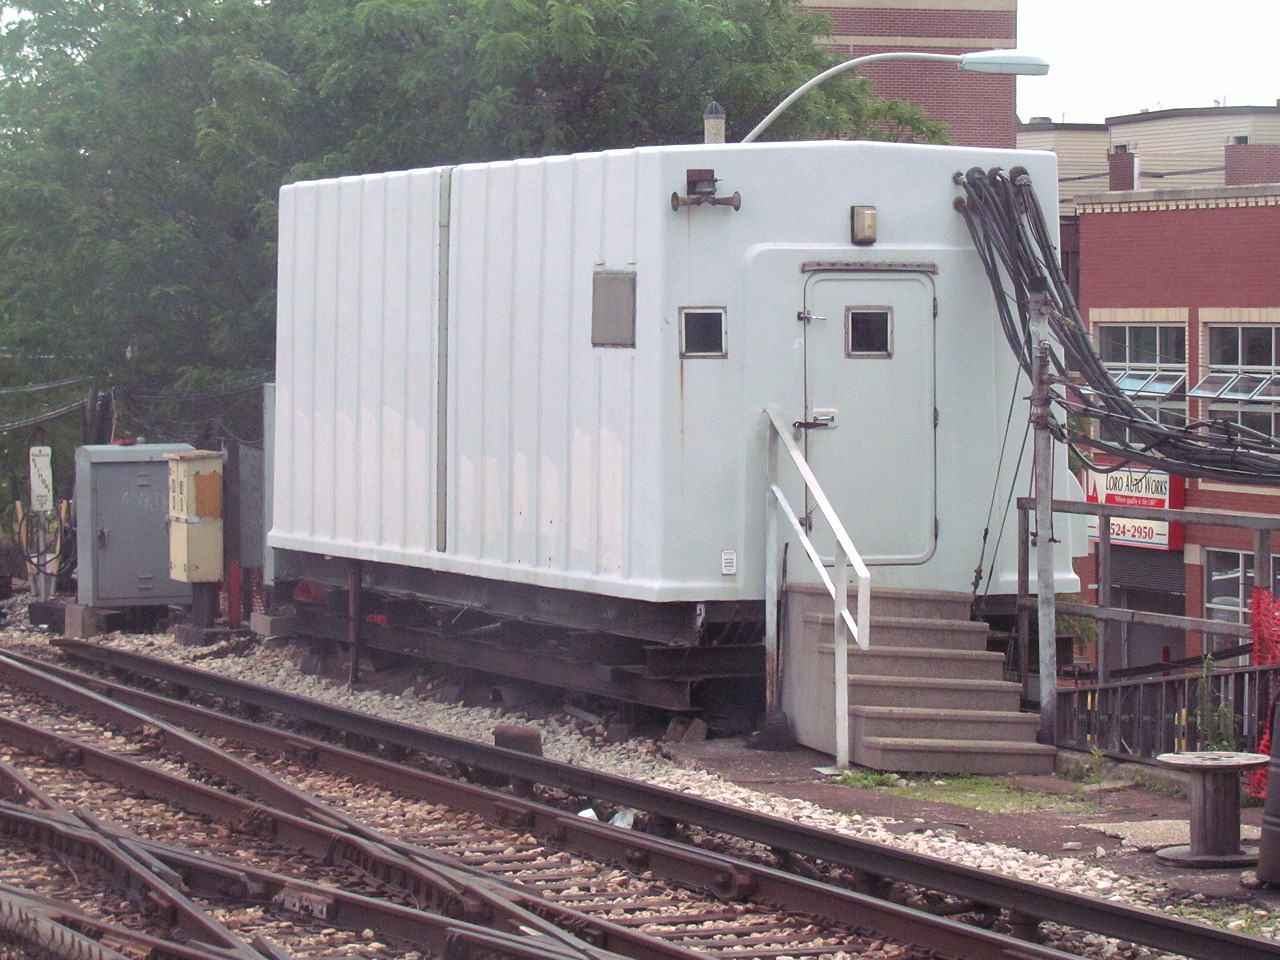 The Position Light Cta Mini Towers Relay Terminal Transportation Finally Sometimes Operator Can Get His Own Stand Alone Booth On Station Platform One Such Tower Is Located At South End Of Damien